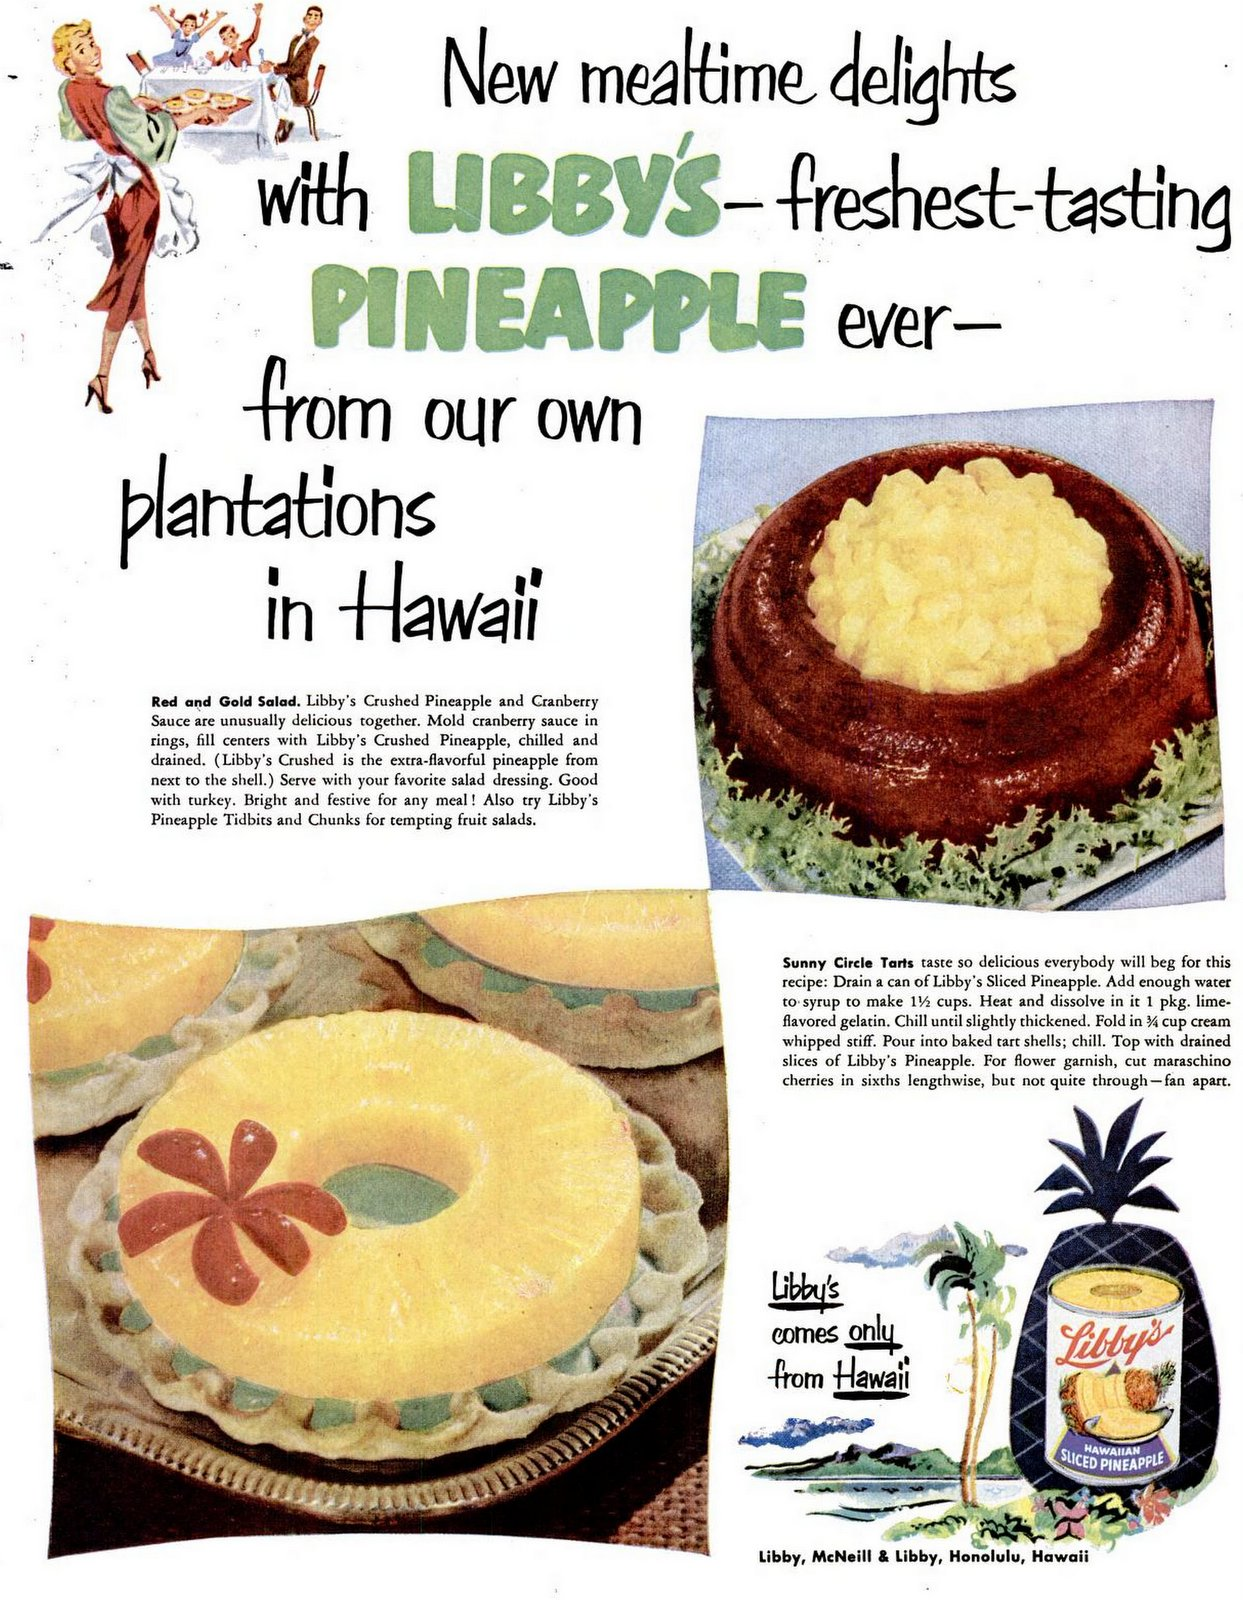 1952 recipes with pineapple